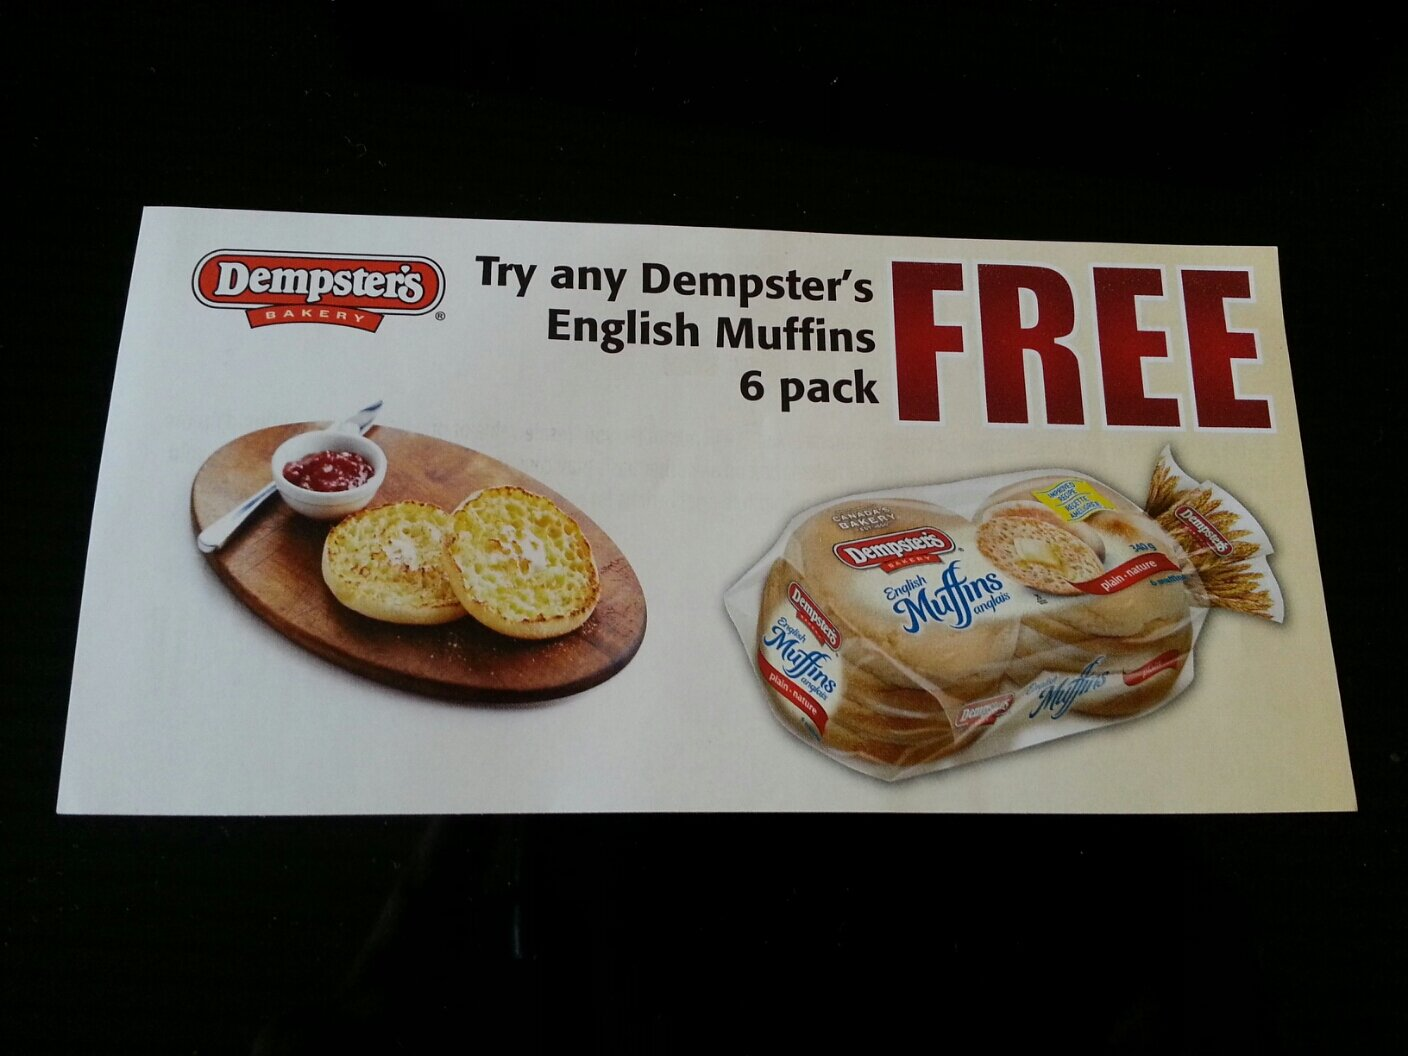 Have you seen this coupon? FREE DEMPSTERS ENGLISH MUFFINS